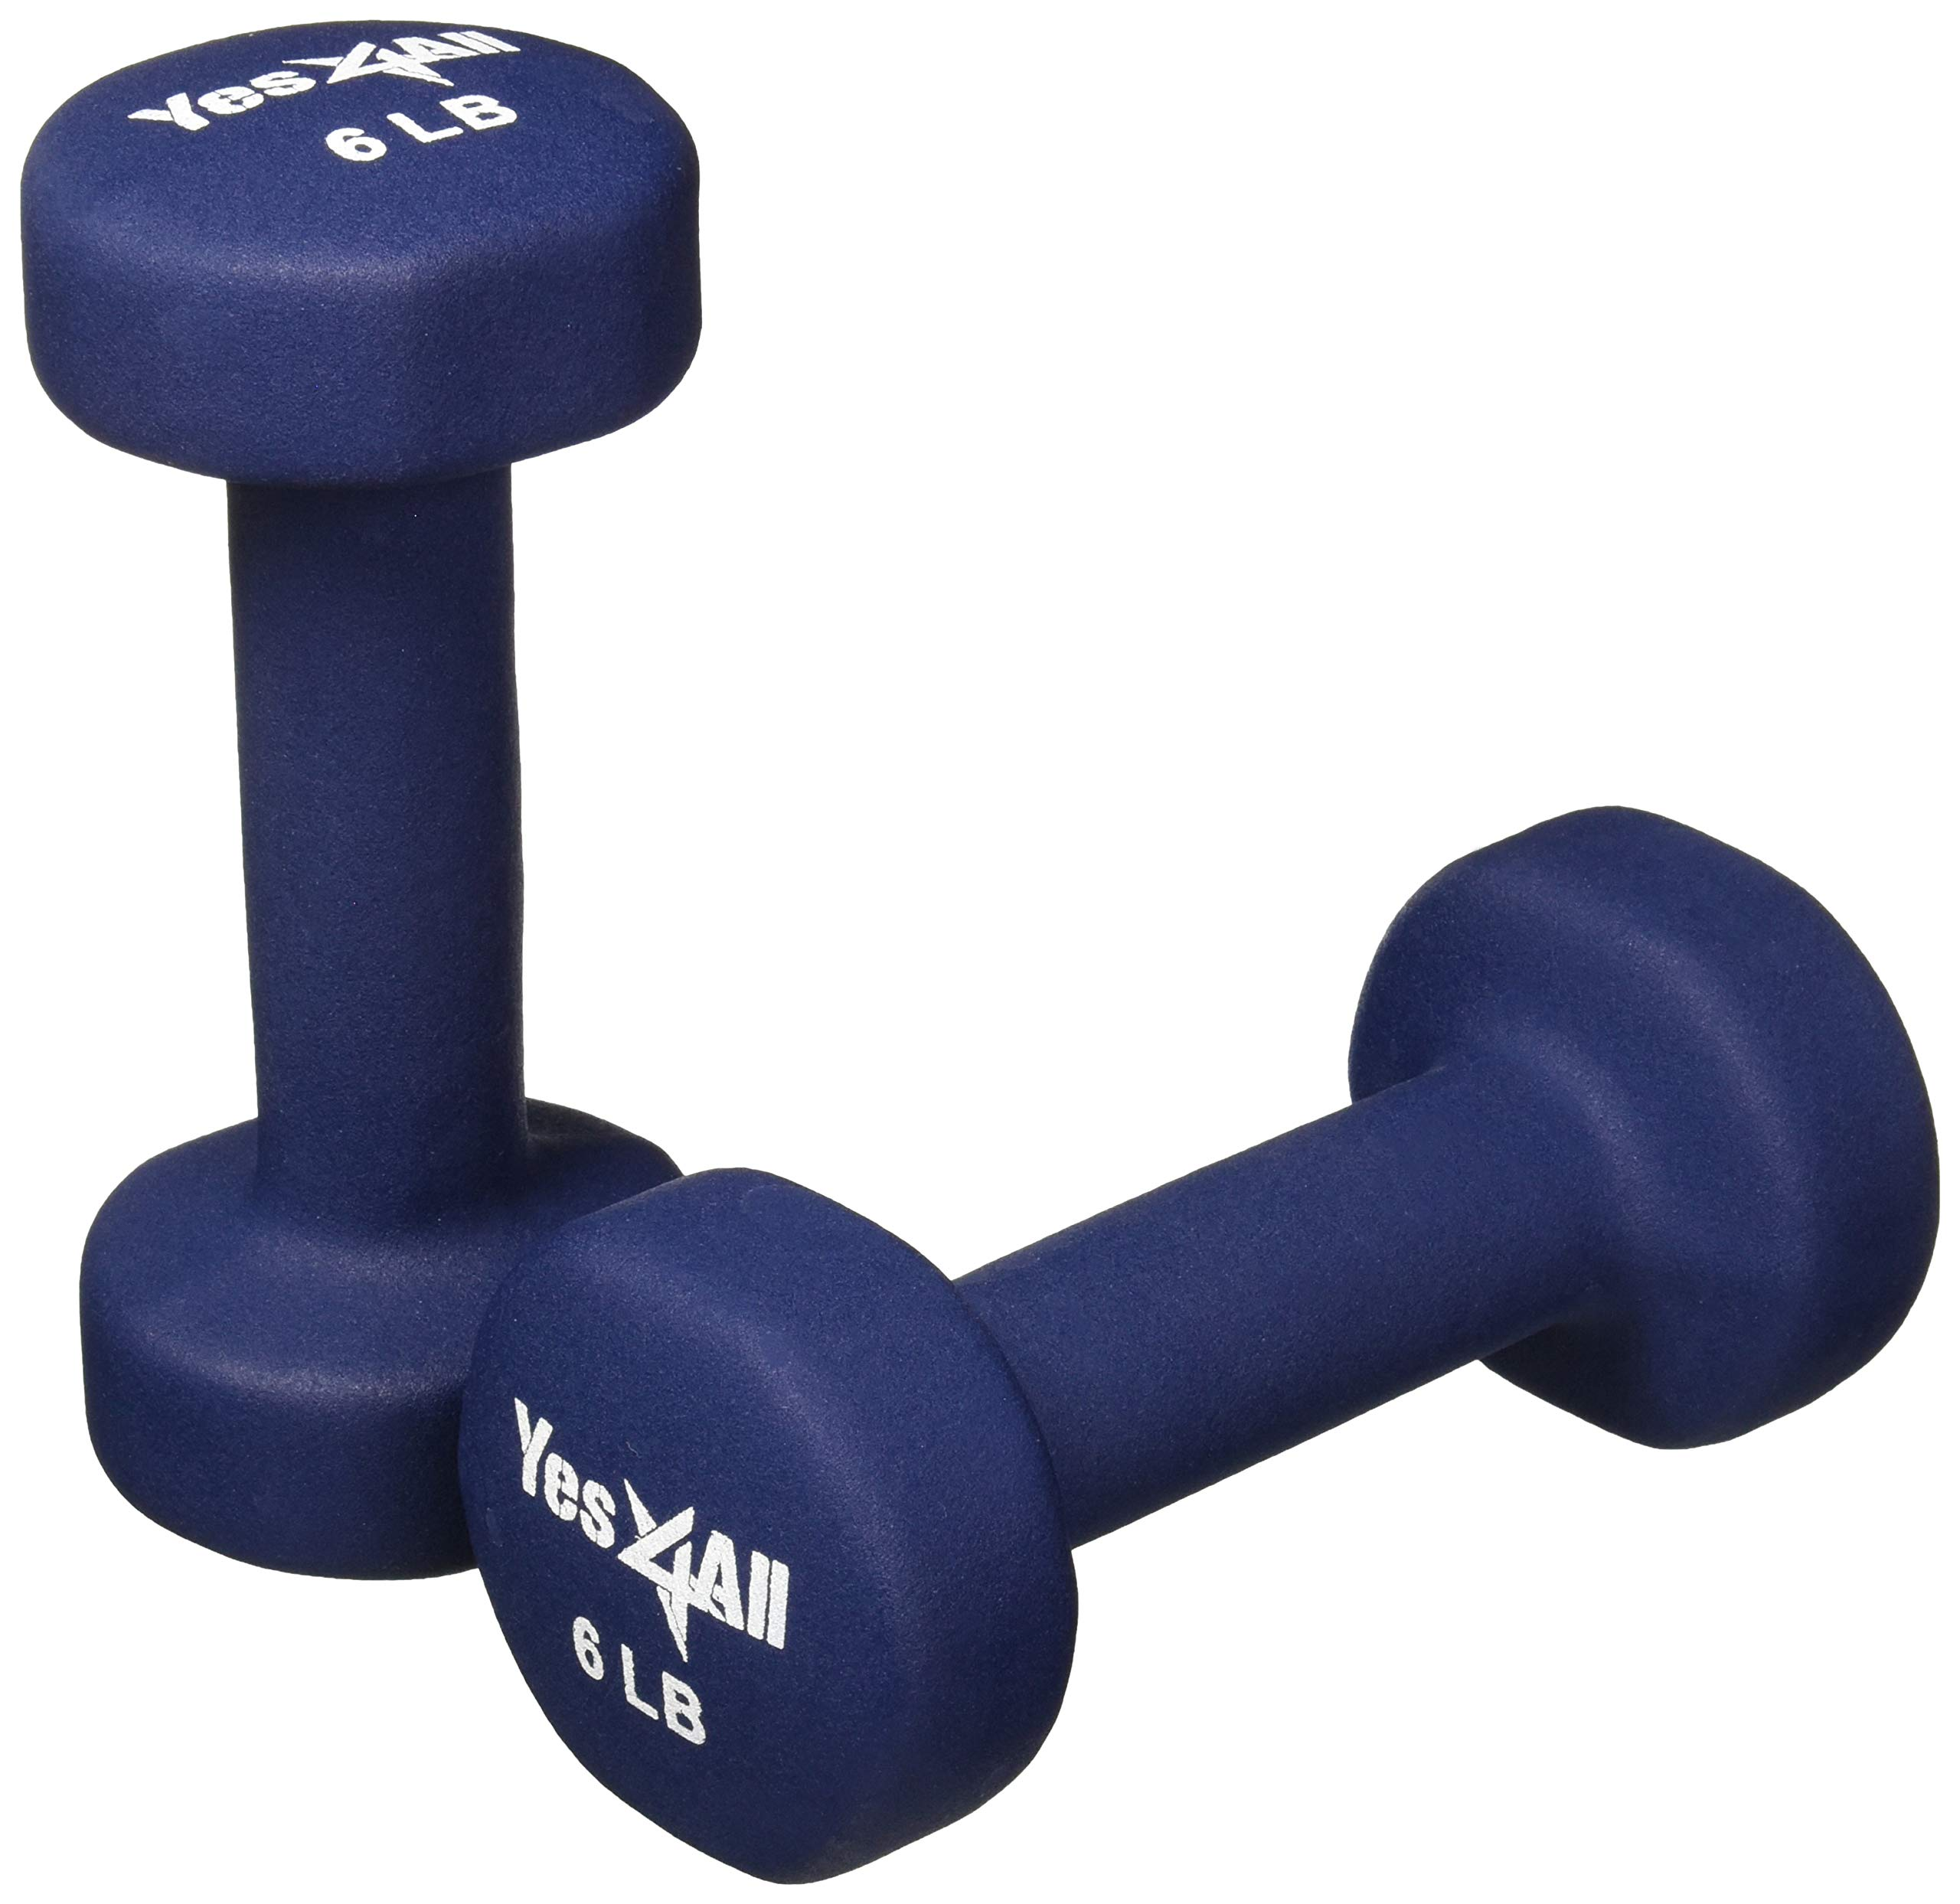 Yes4All 3 lbs Dumbbells Neoprene with Non Slip Grip - Great for Total Body Workout - Total Weight: 6 lbs (Set of 2)